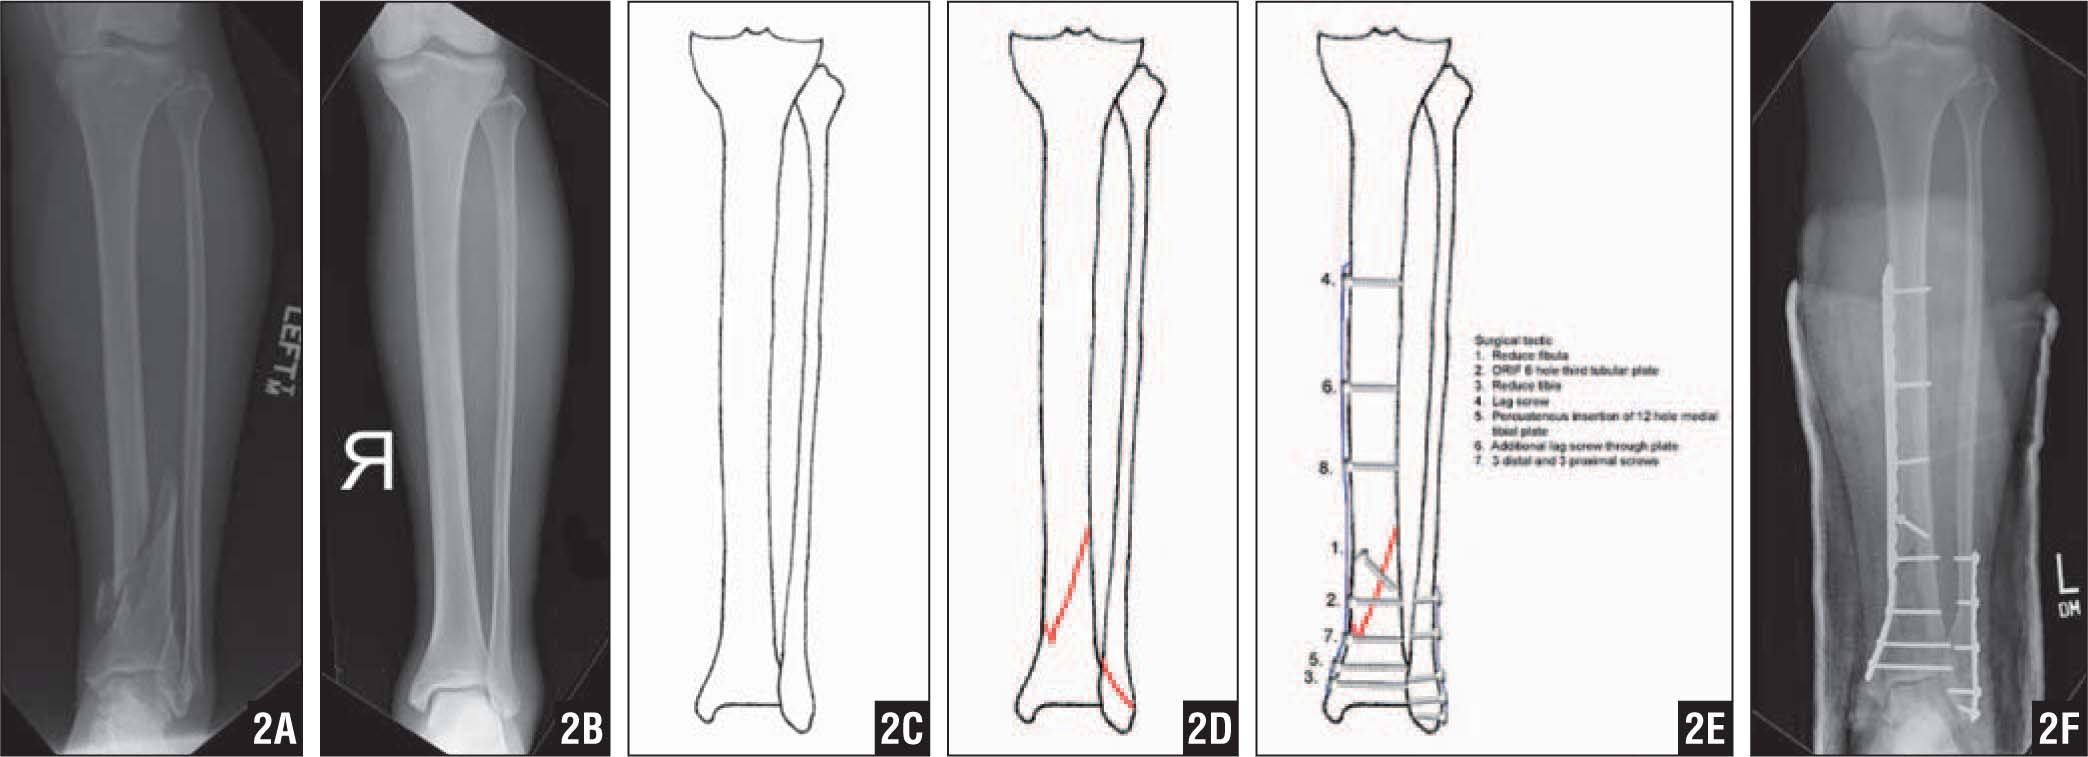 Radiograph of Left Tibia and Fibula Fracture (A). Reverse Image of Contralateral Uninjured Tibia (B). Tracing of the Tibia and Fibula Outline (C). Addition of Fracture Line. Note only the Main Fracture Lines Have Been Drawn for Clarity. Additional Fracture Lines Could Be Added Using Dashed Lines for the Posterior Extension of the Fracture Lines (D). Addition of the Planned Plates and Screws, Along with the Written Surgical Tactic (E). Postoperative Radiograph of Completed Internal Fixation (F).